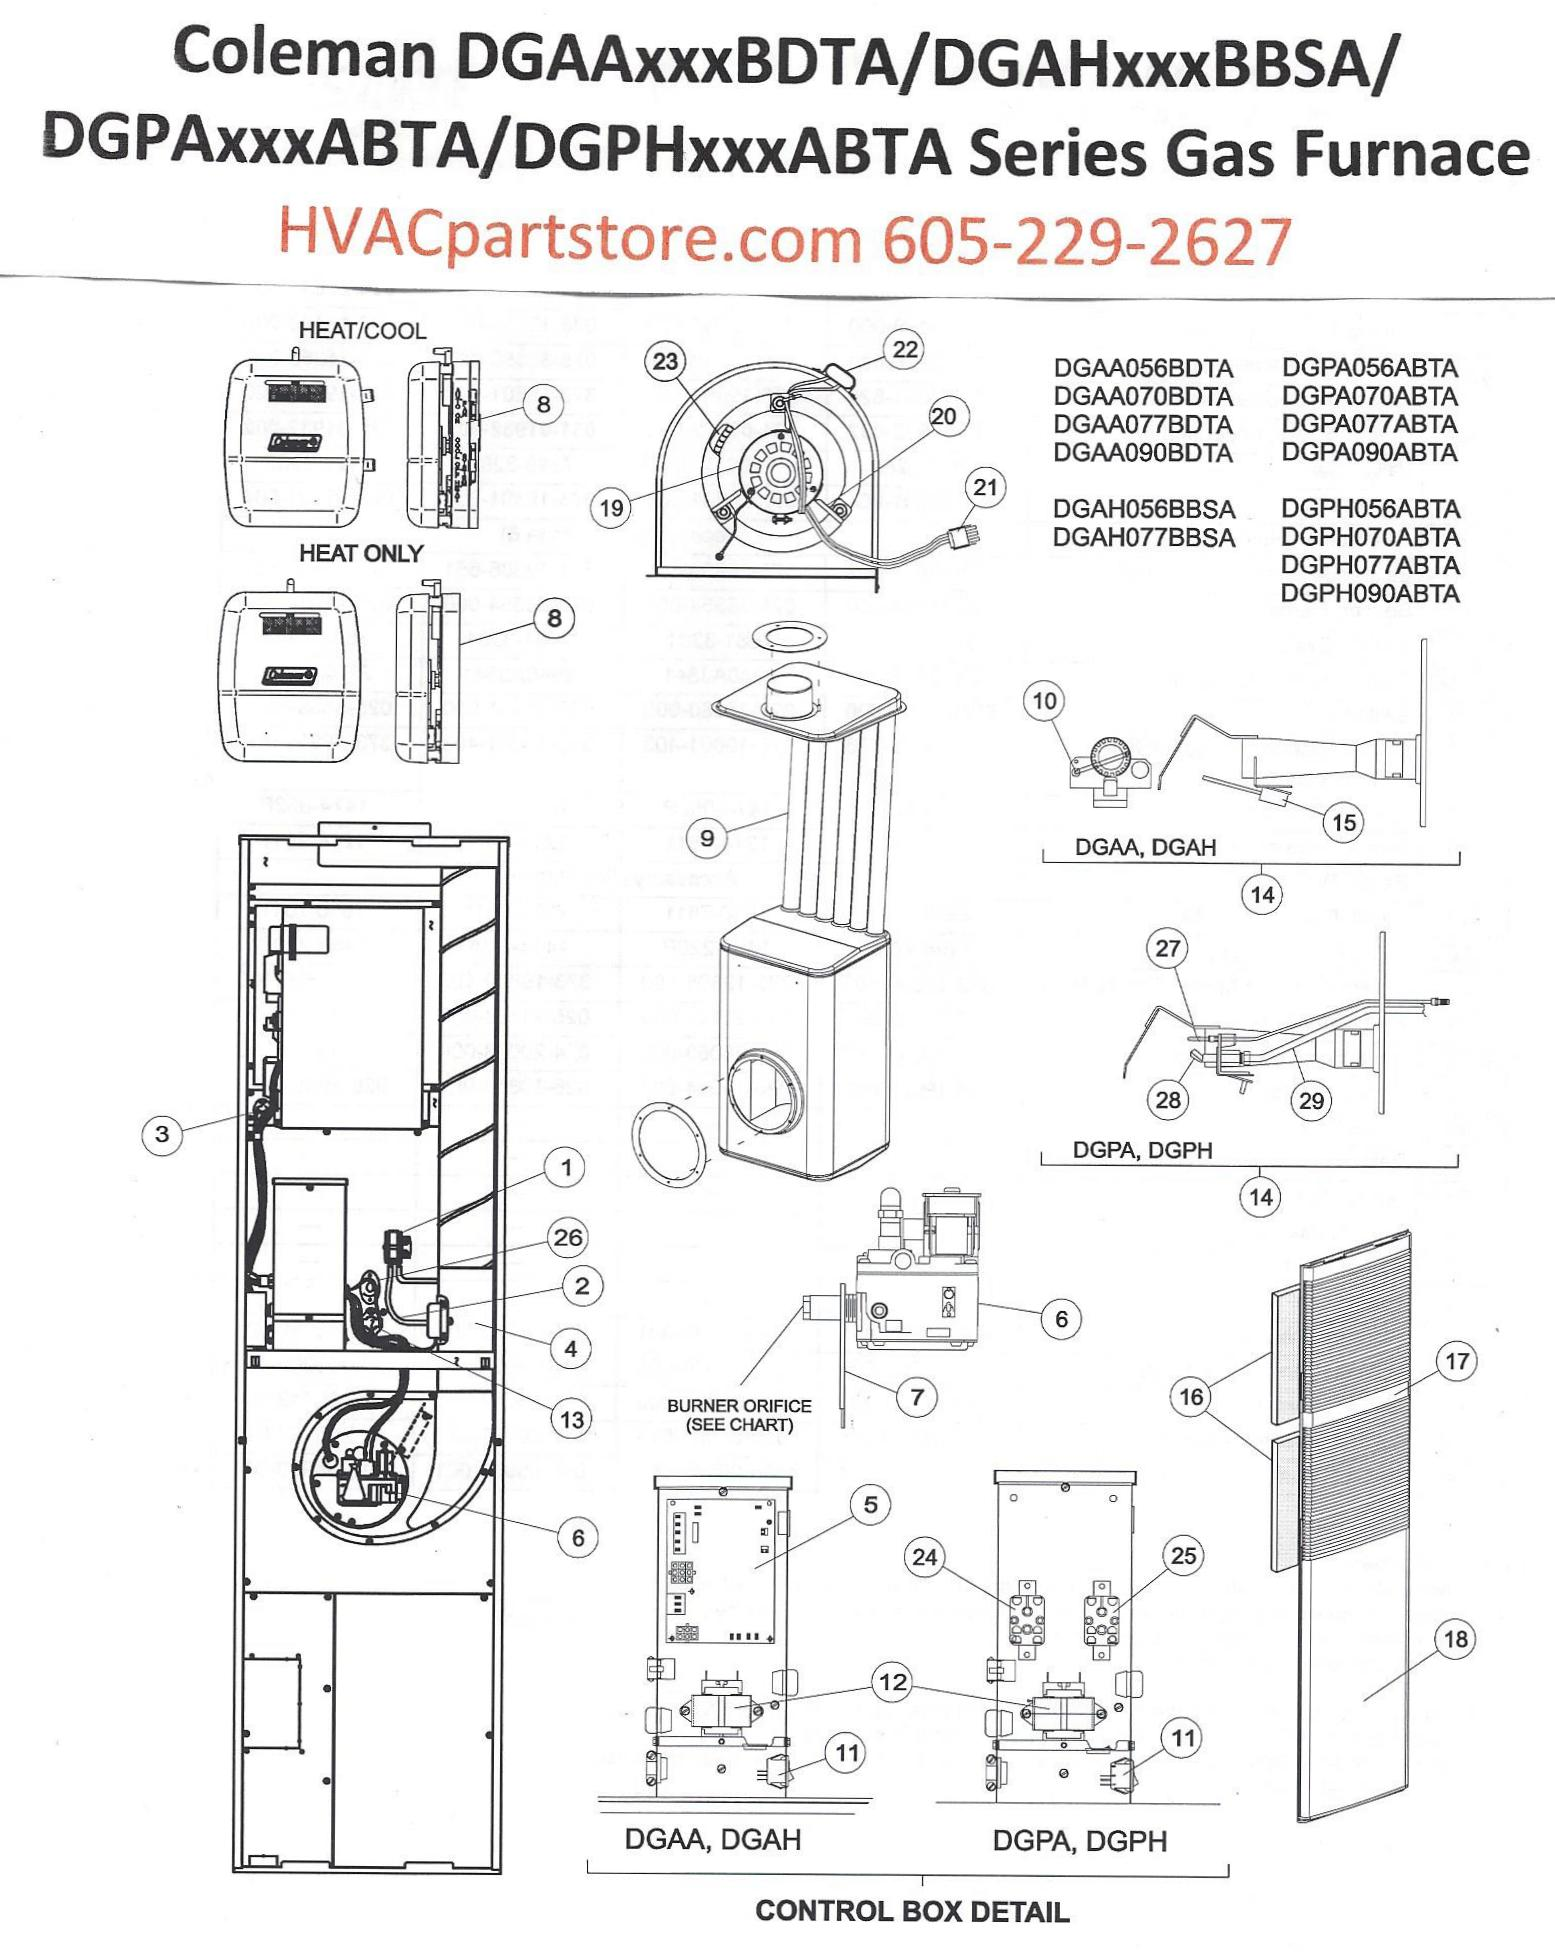 york furnace wiring diagram with Dgaa070bdta Coleman Gas Furnace Parts on Hvac Transformer Wiring Diagram moreover US20040220777 in addition Rheem Wiring Diagram as well York Ys Chiller Wiring Diagram moreover How Can I Modify A 4 Wire Thermostat To A New Thermostat Requiring C Wire.